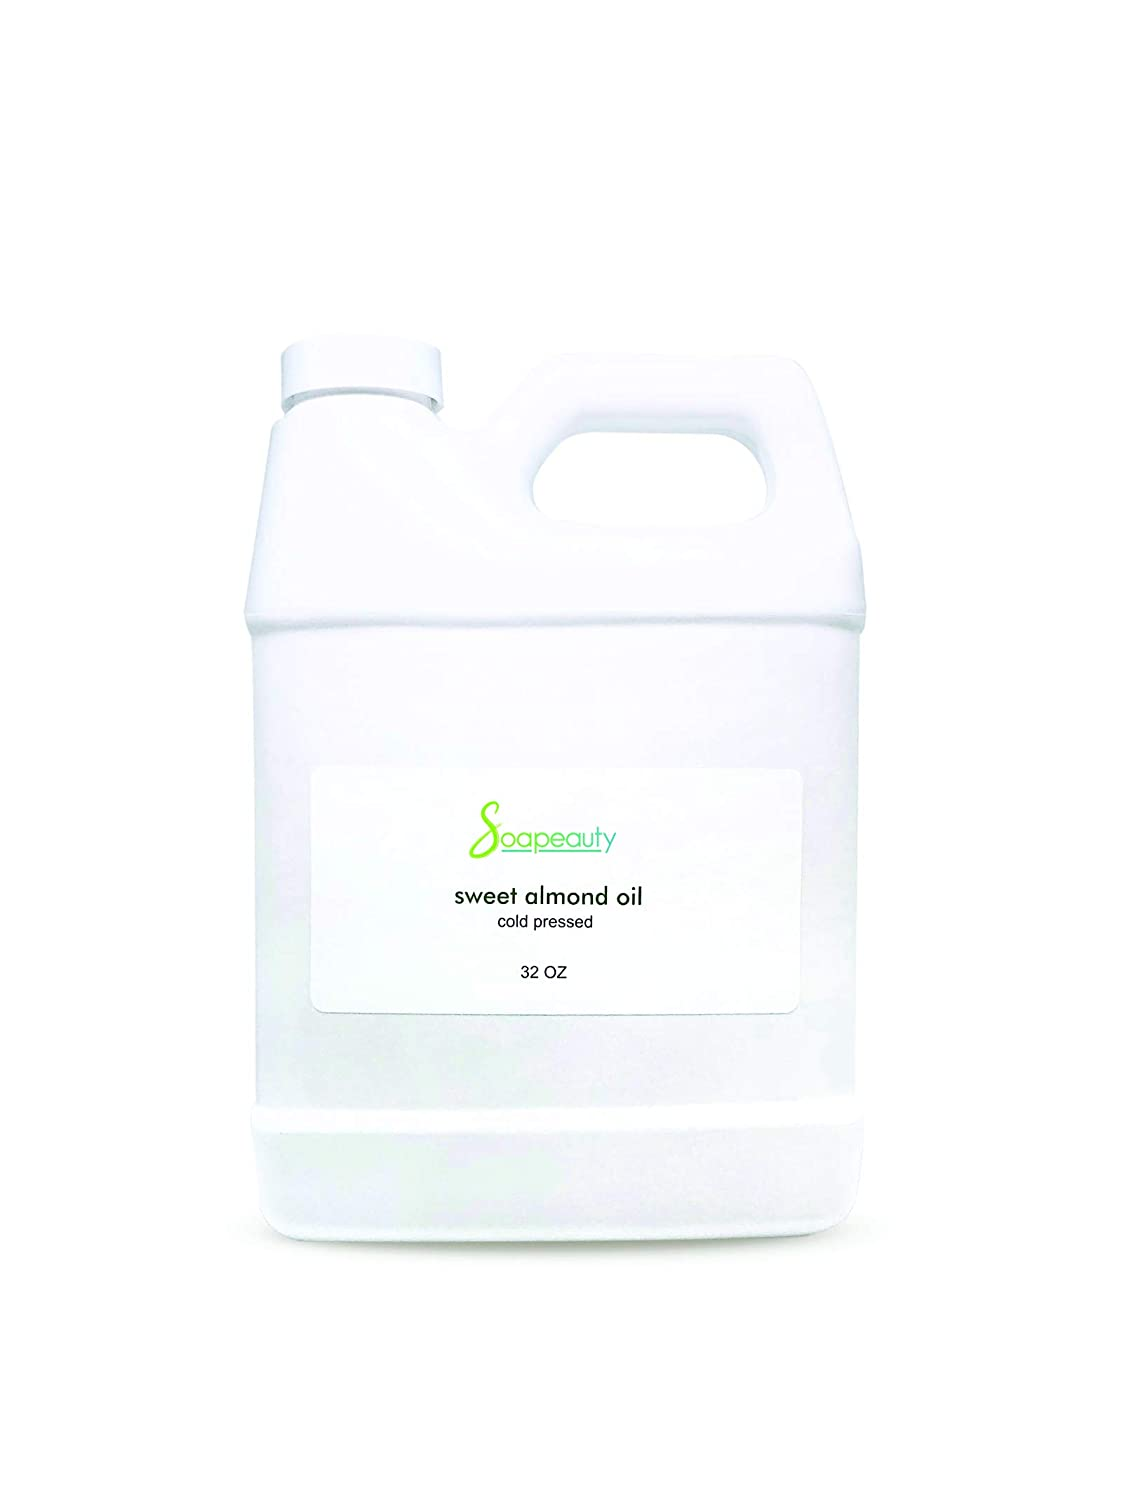 SWEET ALMOND OIL ORGANIC CARRIER COLD PRESSED REFINED NATURAL 100% PURE (32 OZ)